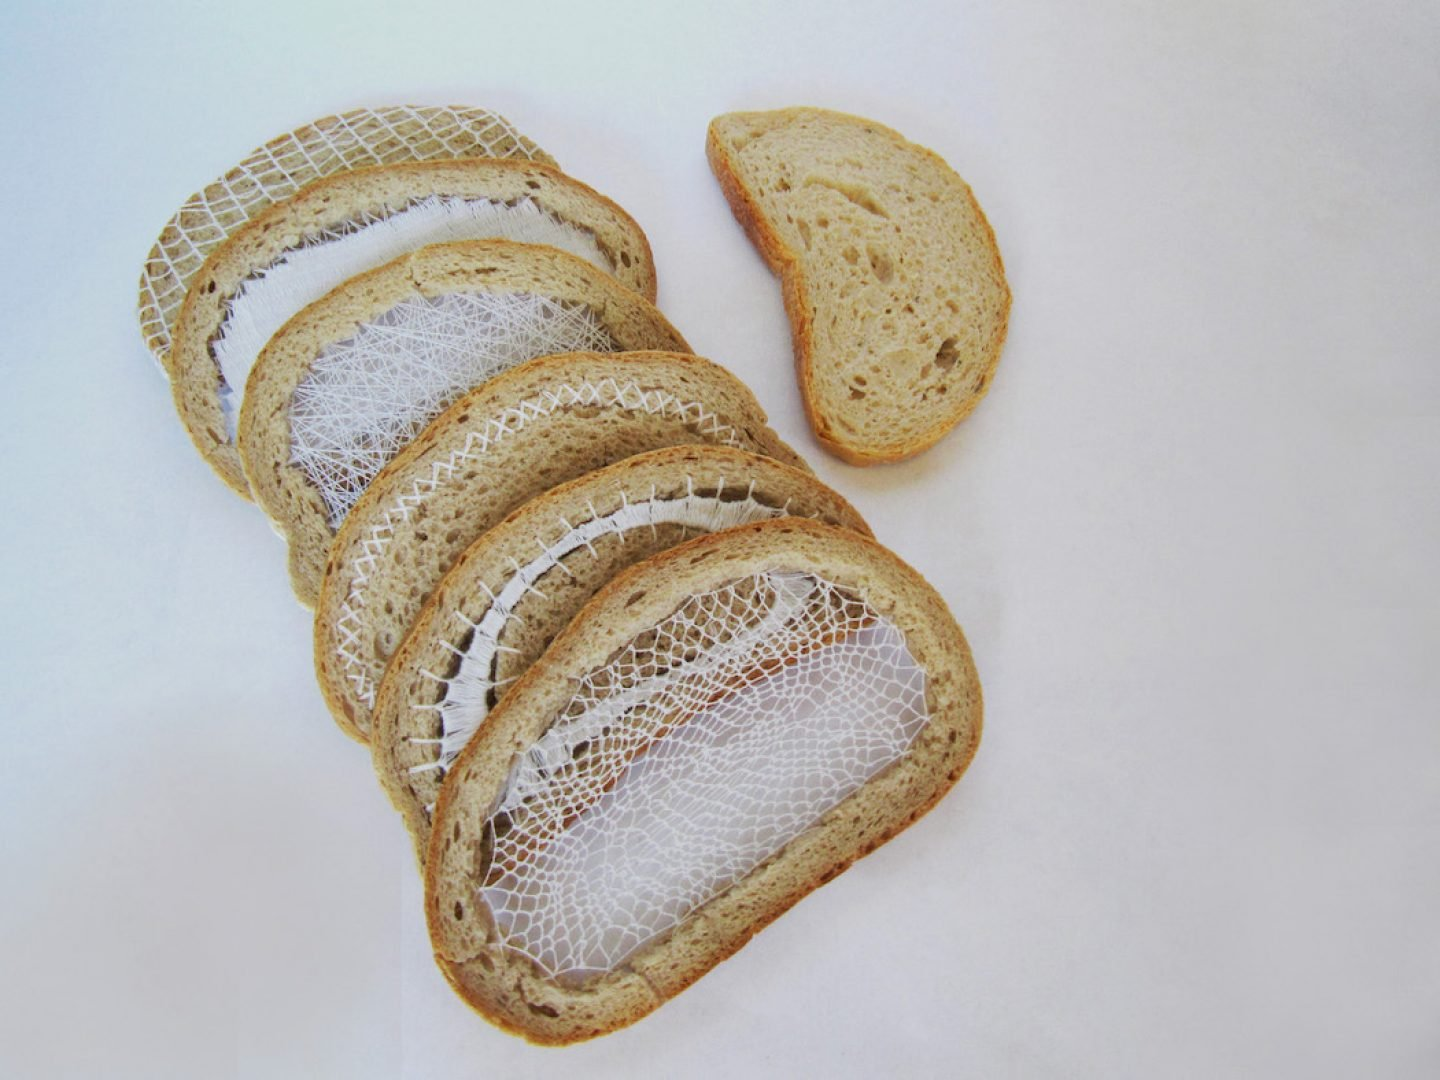 art_tereziakrnacova_everydaybread_01